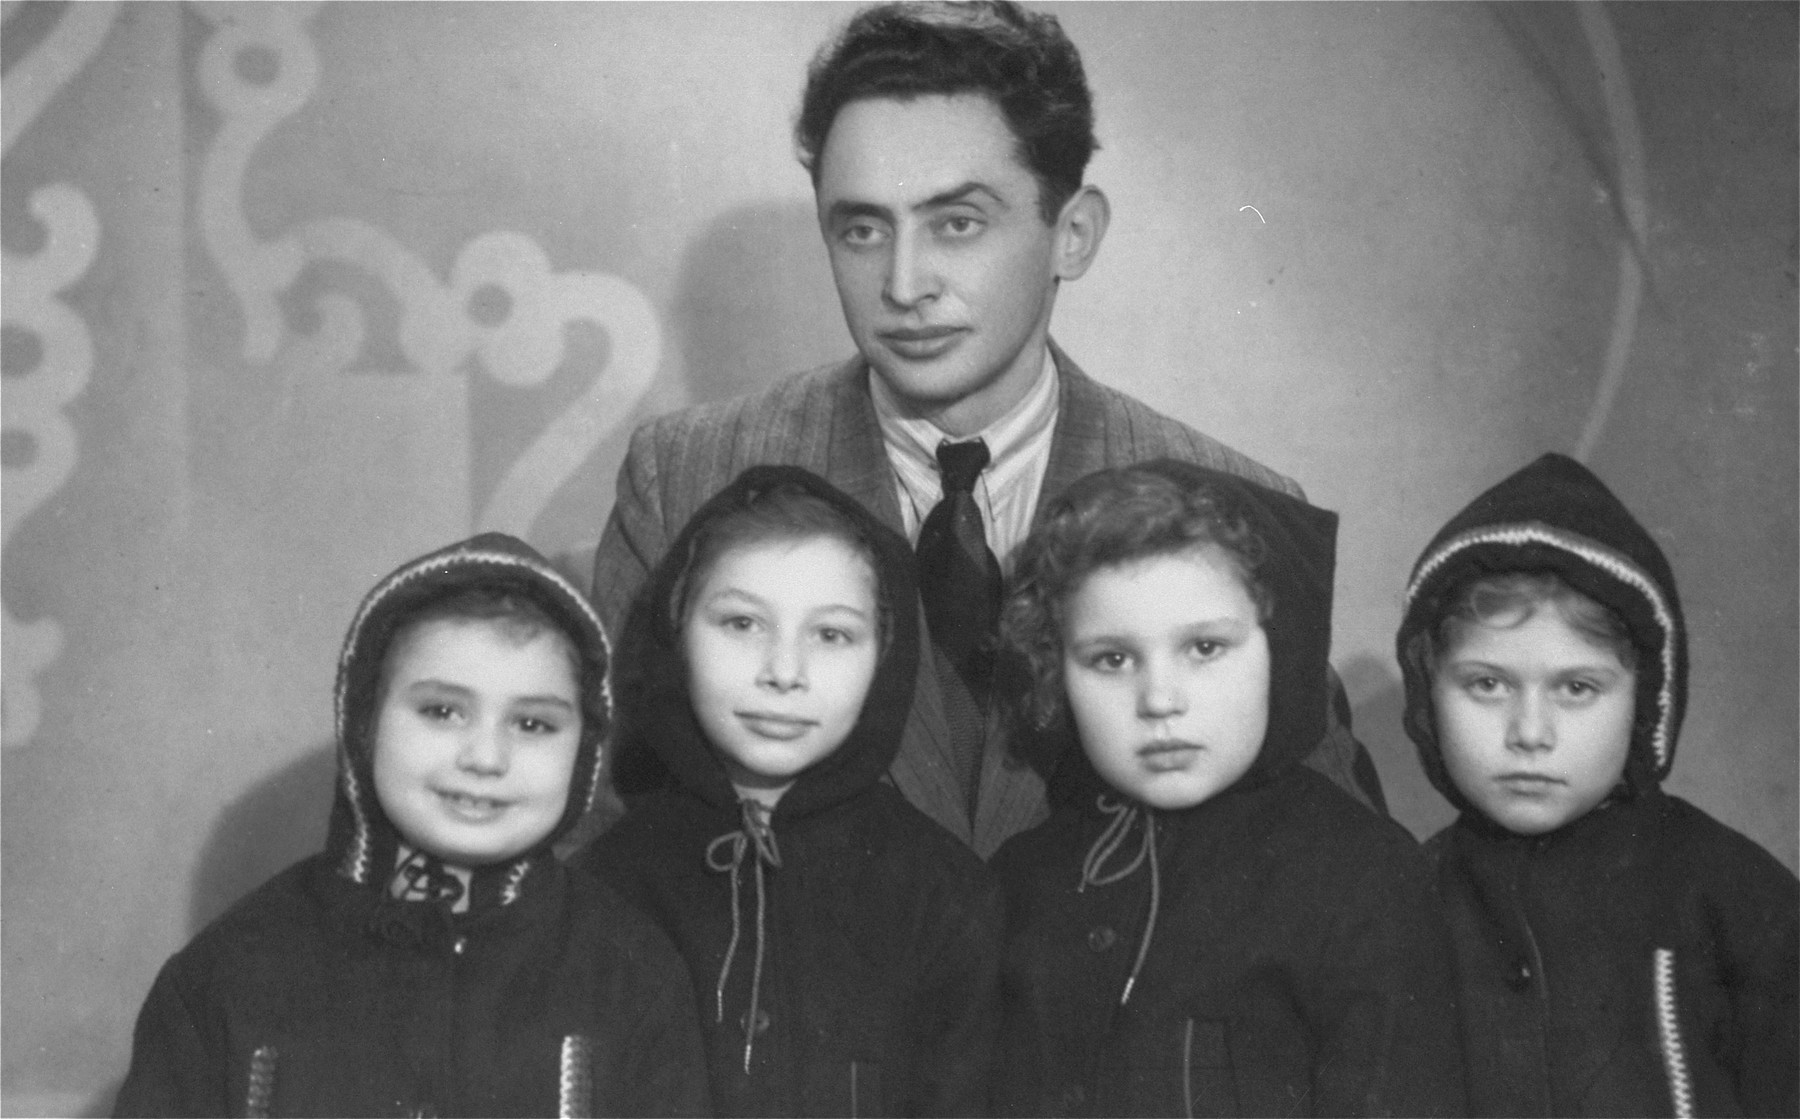 Jehuda Bornstein poses with four Jewish girls he retrieved from hiding and placed in a children's home on Narutowicza Street in Lodz.   Pictured from left to right are: Halinka, who was hidden as Zinaida Bar in Legnica, Poland by a Christian woman whose name was Ostrowska; Wandeczka, now known as Tamy Lavee, who had been hidden by a Christian woman; Basia David, who was hidden in Orlovo by the Polubinska family who treated Basia so well that she didn't want to leave them; and Sabina (Inka) Kagan, hidden by the Roztropowicz family in Nidzica.